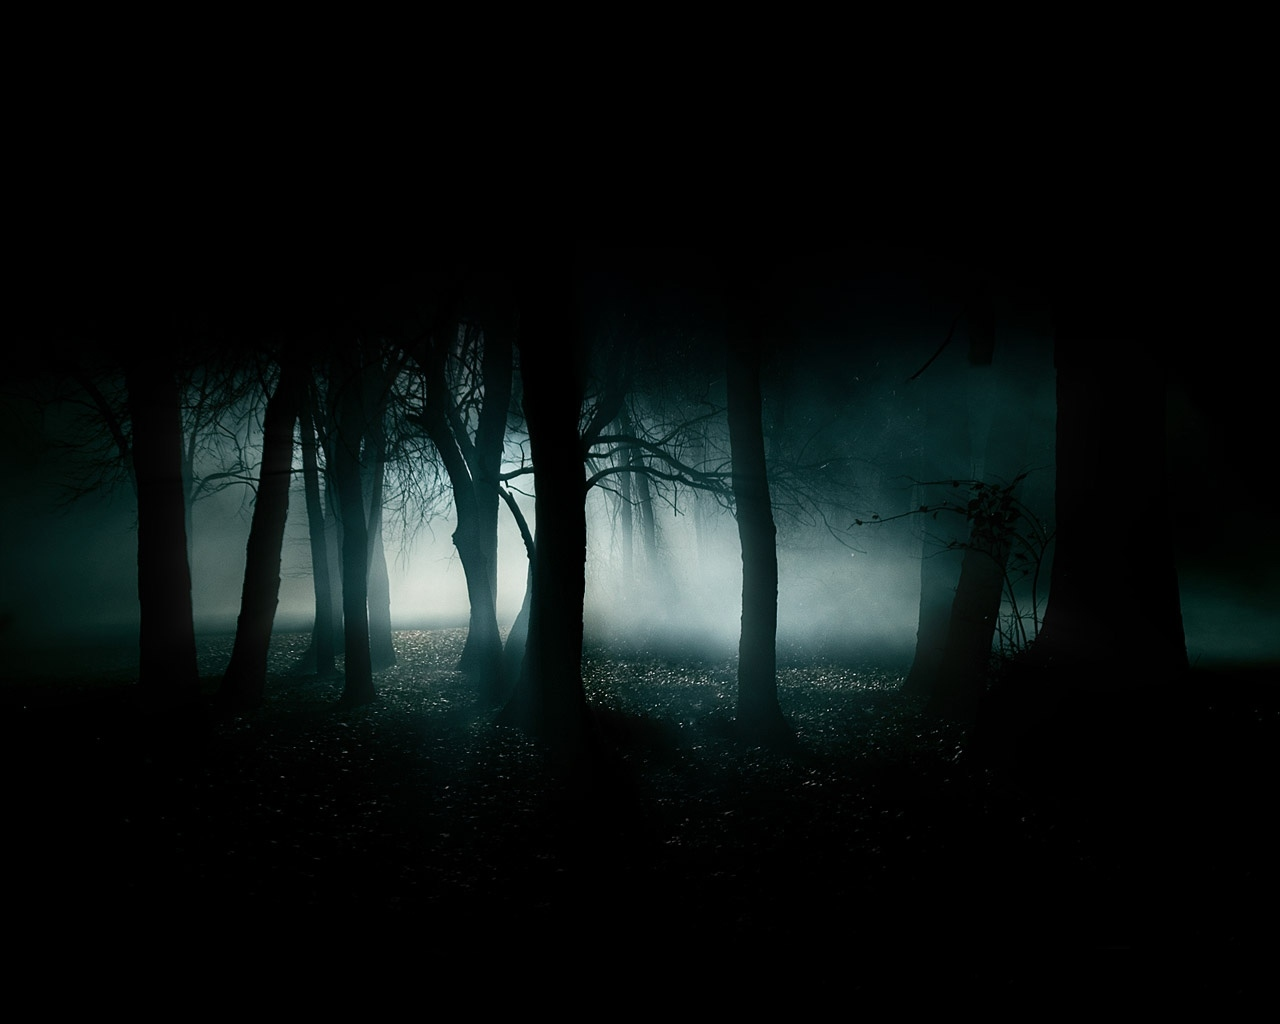 photo wallpaper murals forest just for sharing